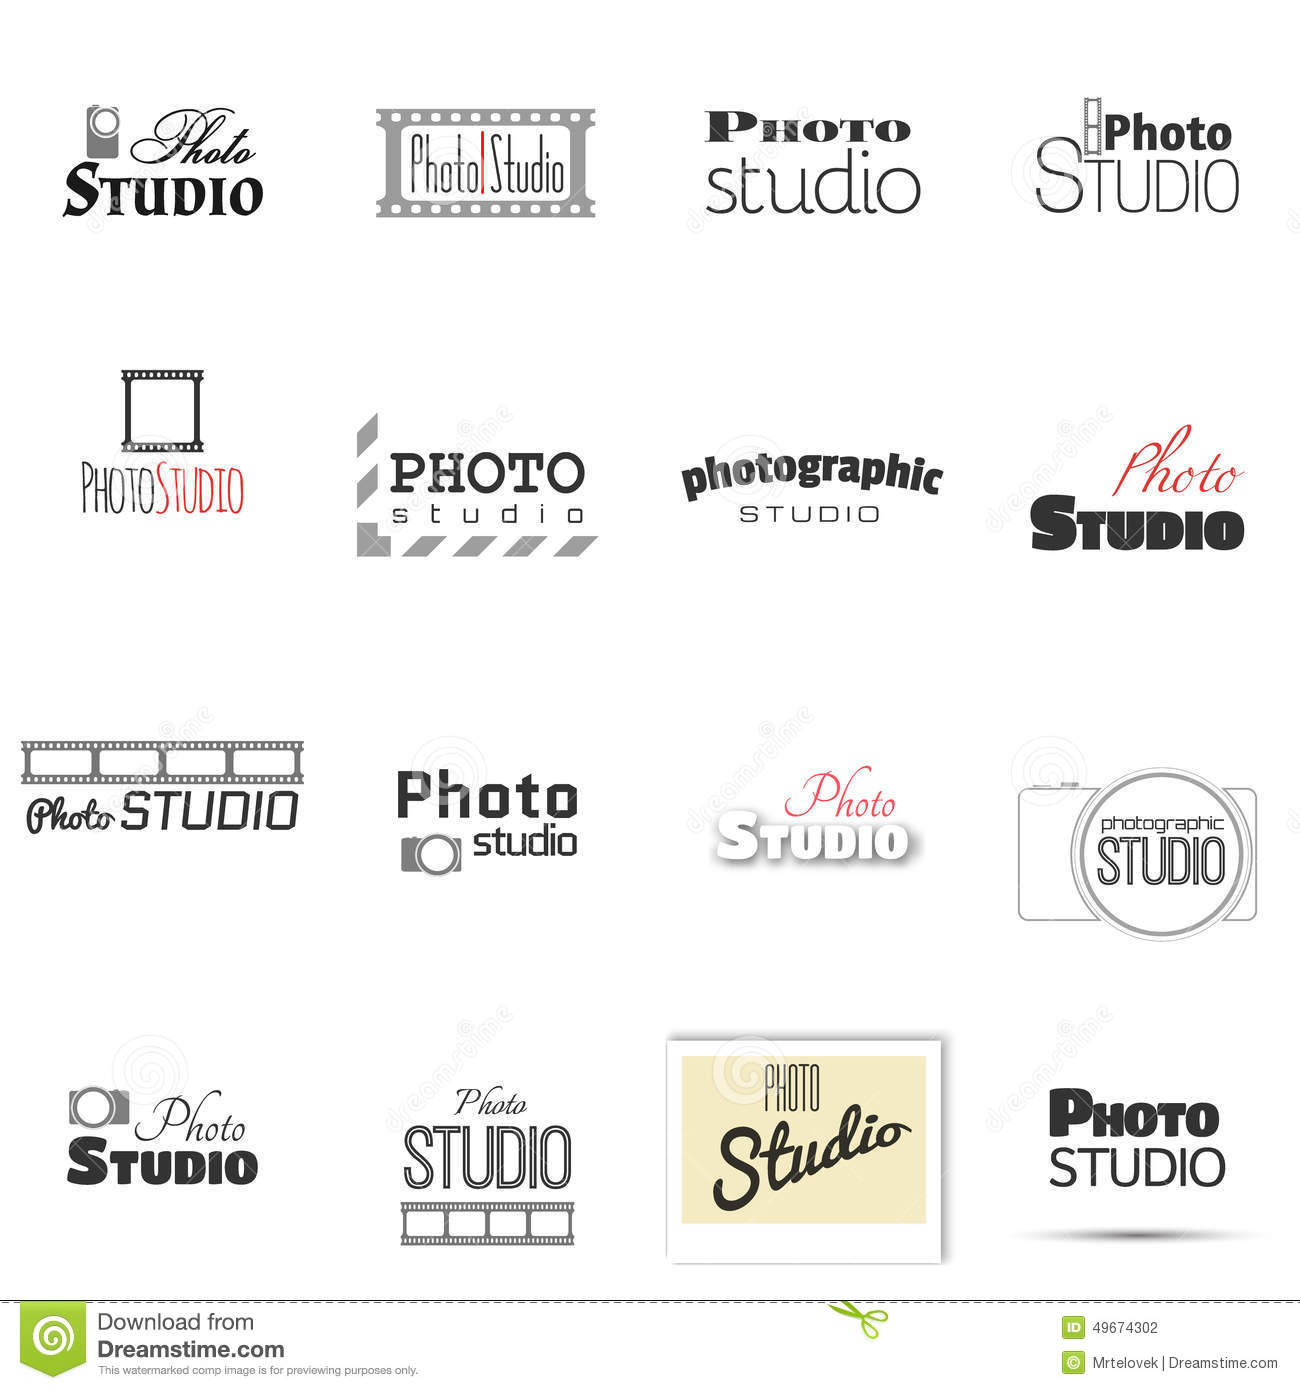 Awesome Furniture Company Names Photo Studio For Label Name Stock Vector Image  49674302